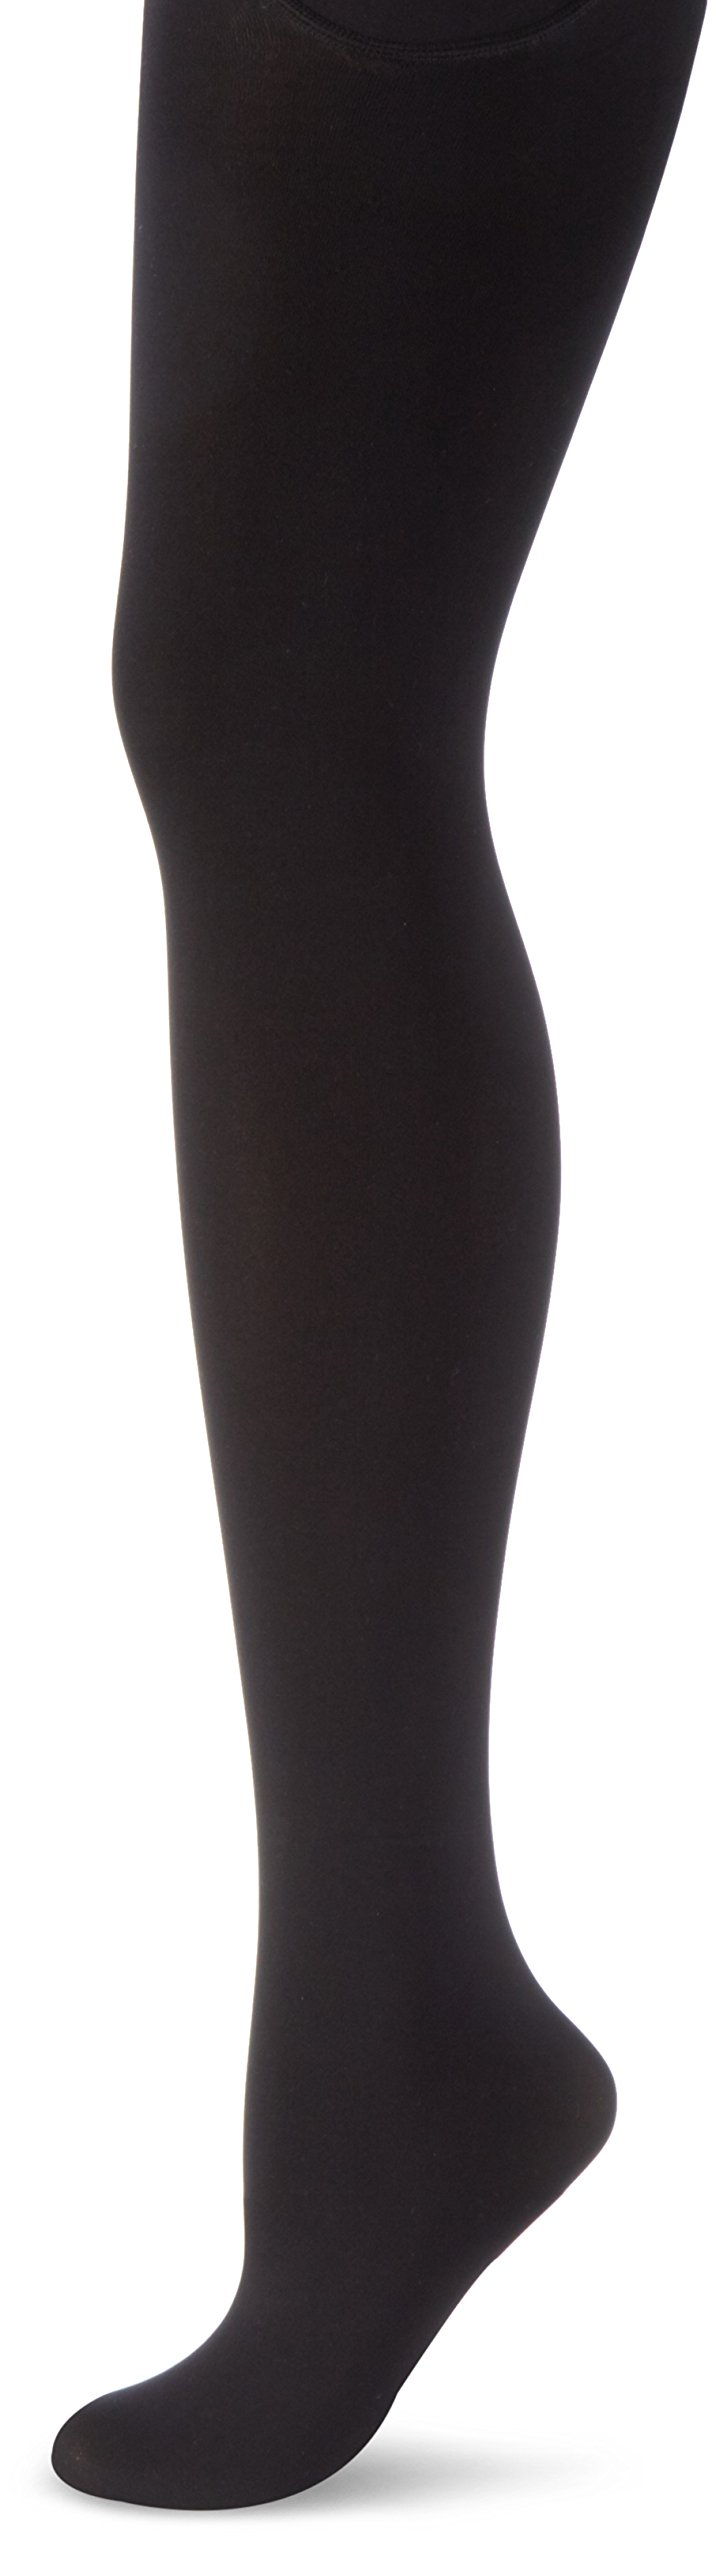 Wolford Velvet De Luxe 66 Denier Tights, L, Black by Wolford